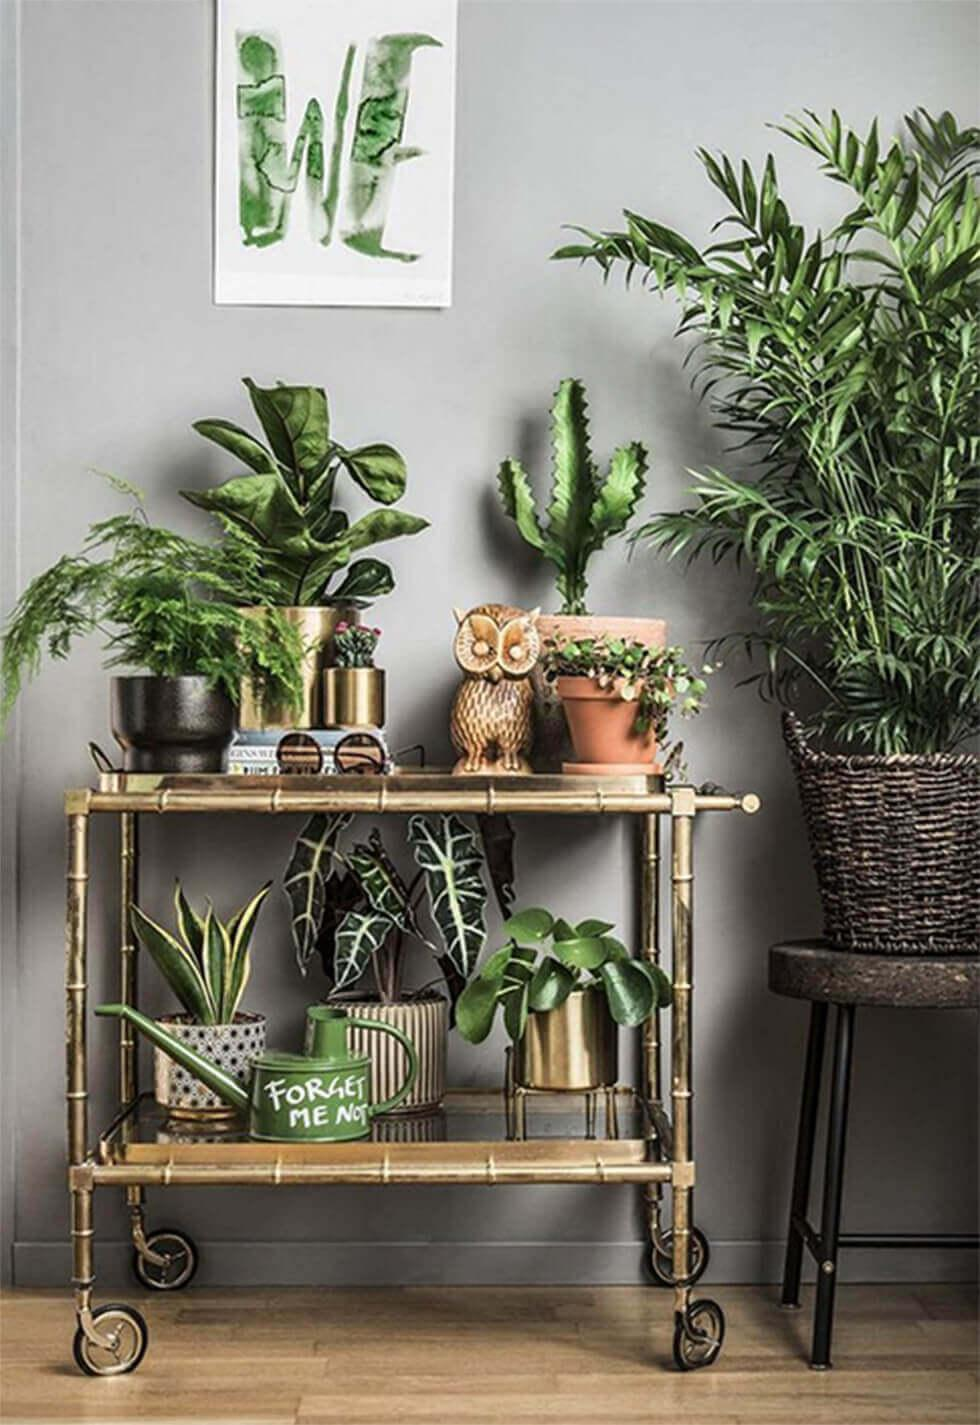 Rolling cart filled with several pots of plants and home decor.